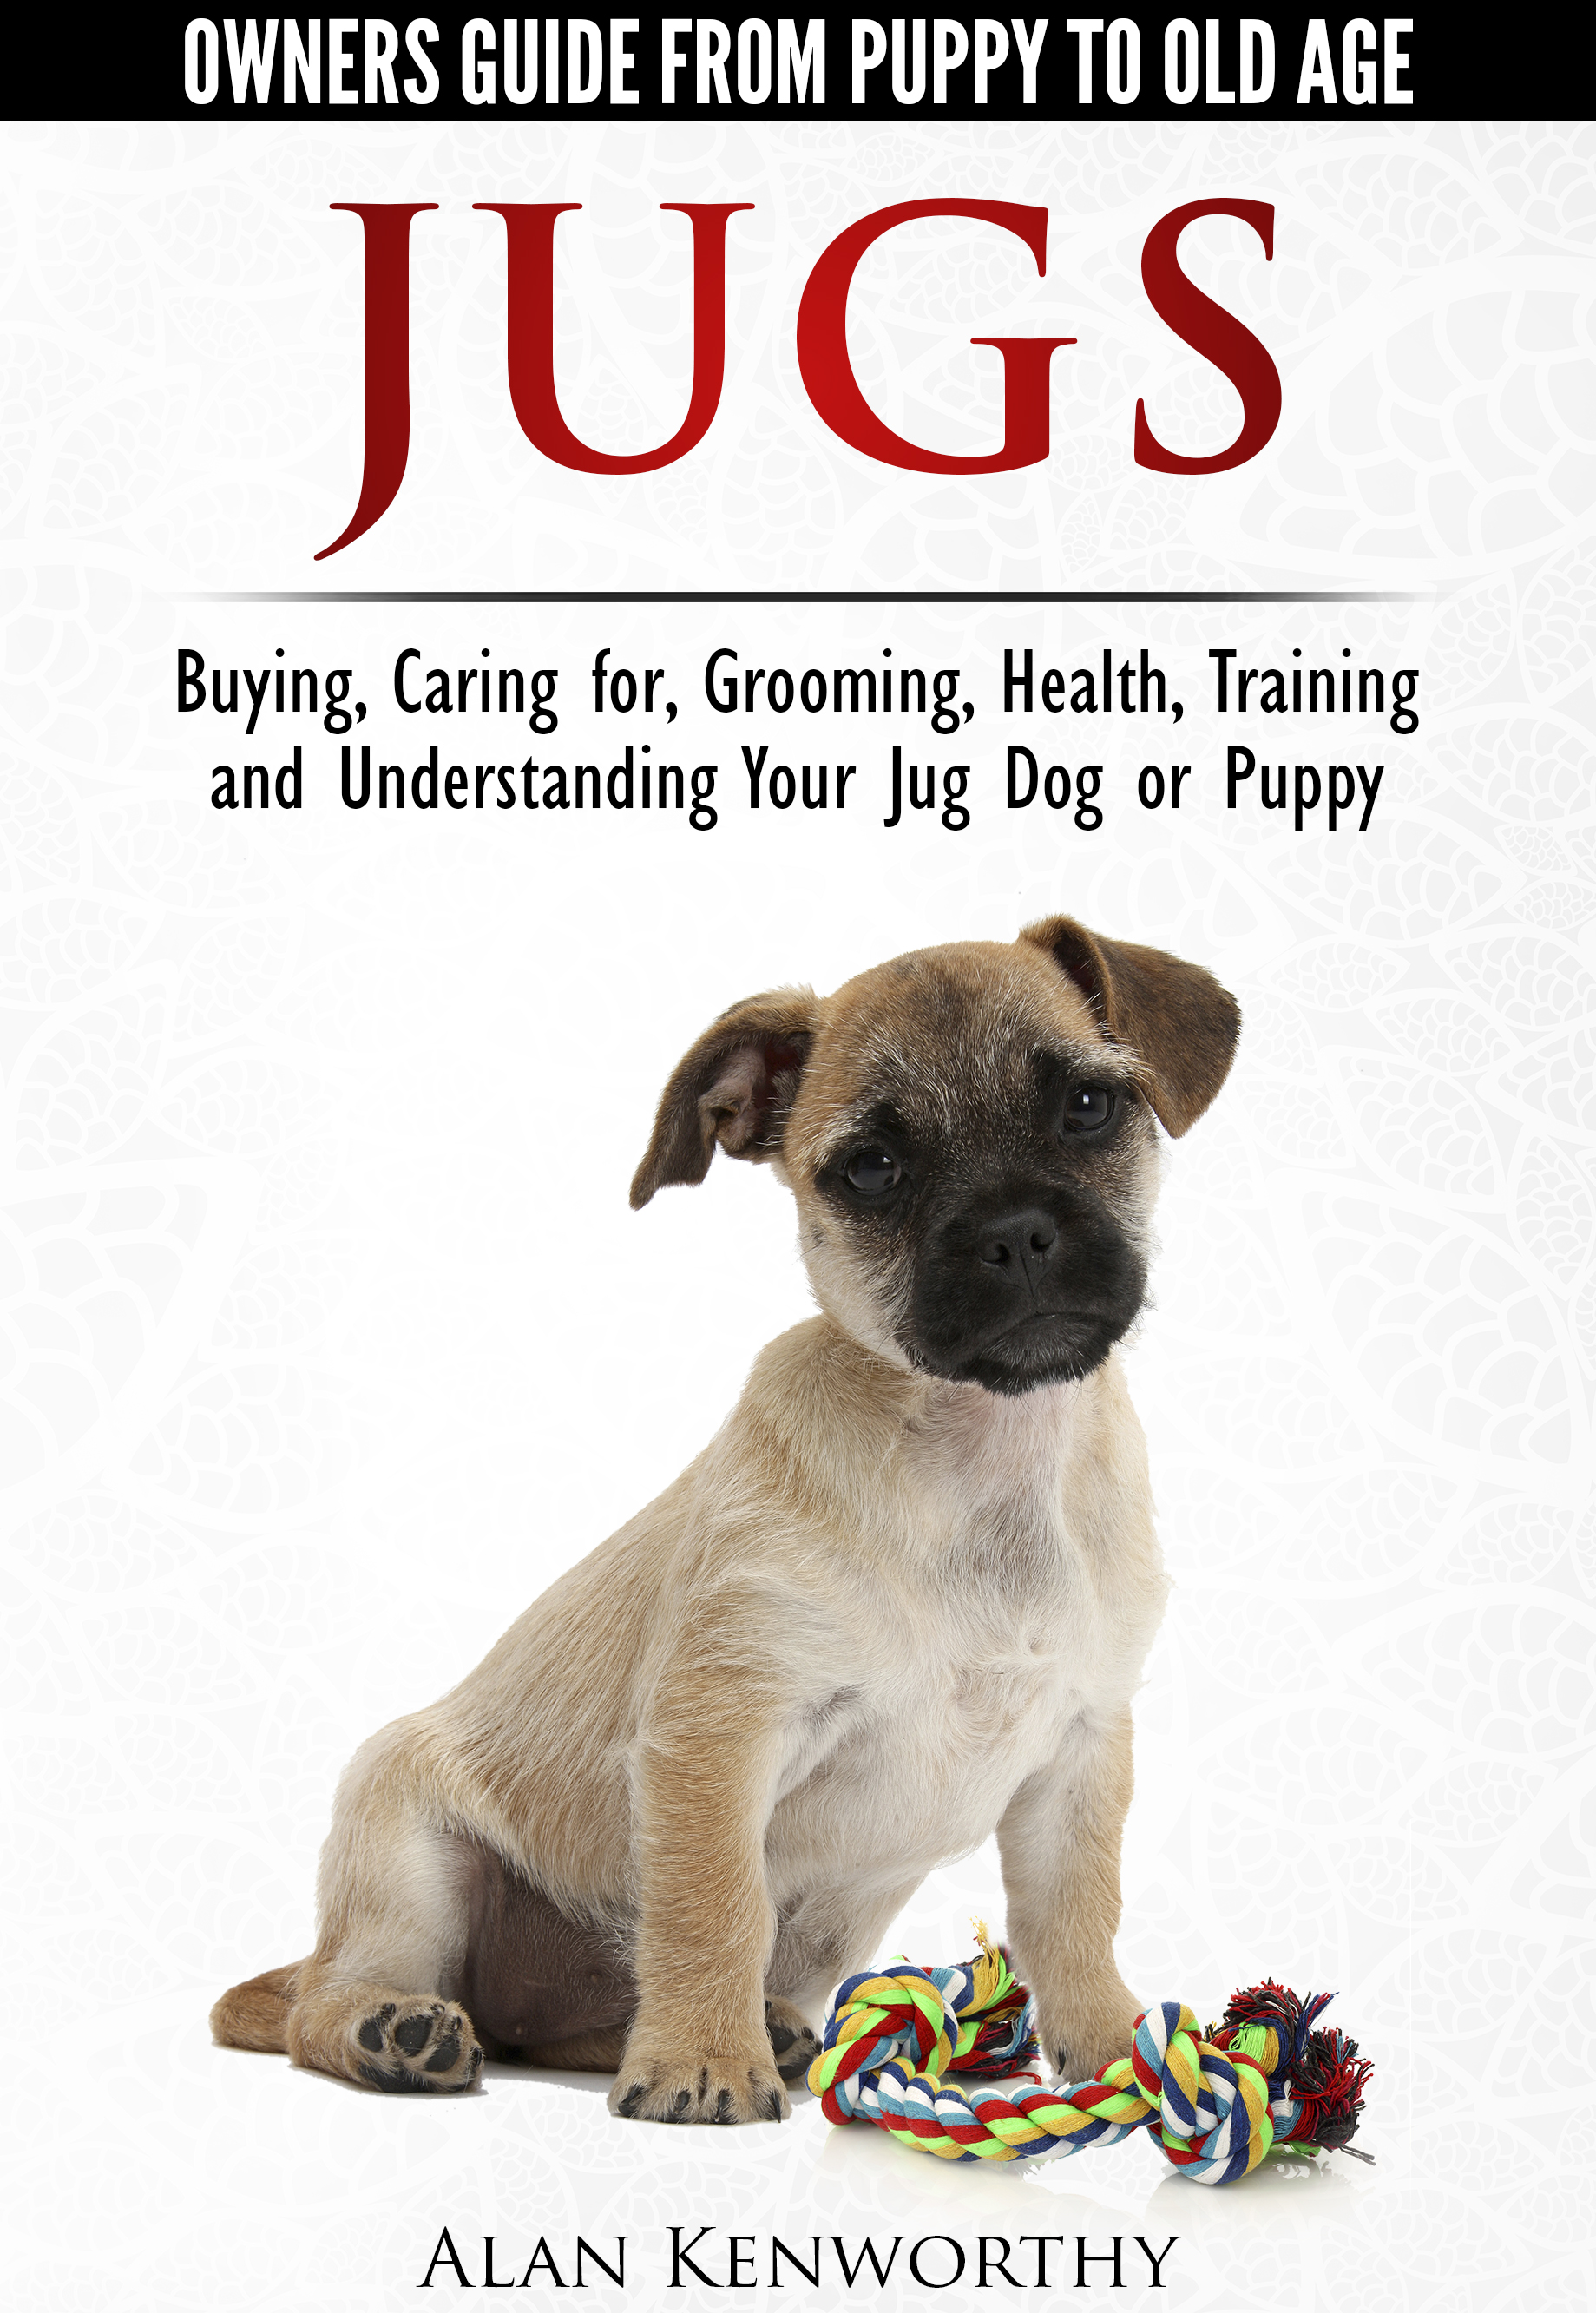 Jug dogs the complete owners guide to jugs buy the owners guide from amazon now click the cover below for more info nvjuhfo Gallery